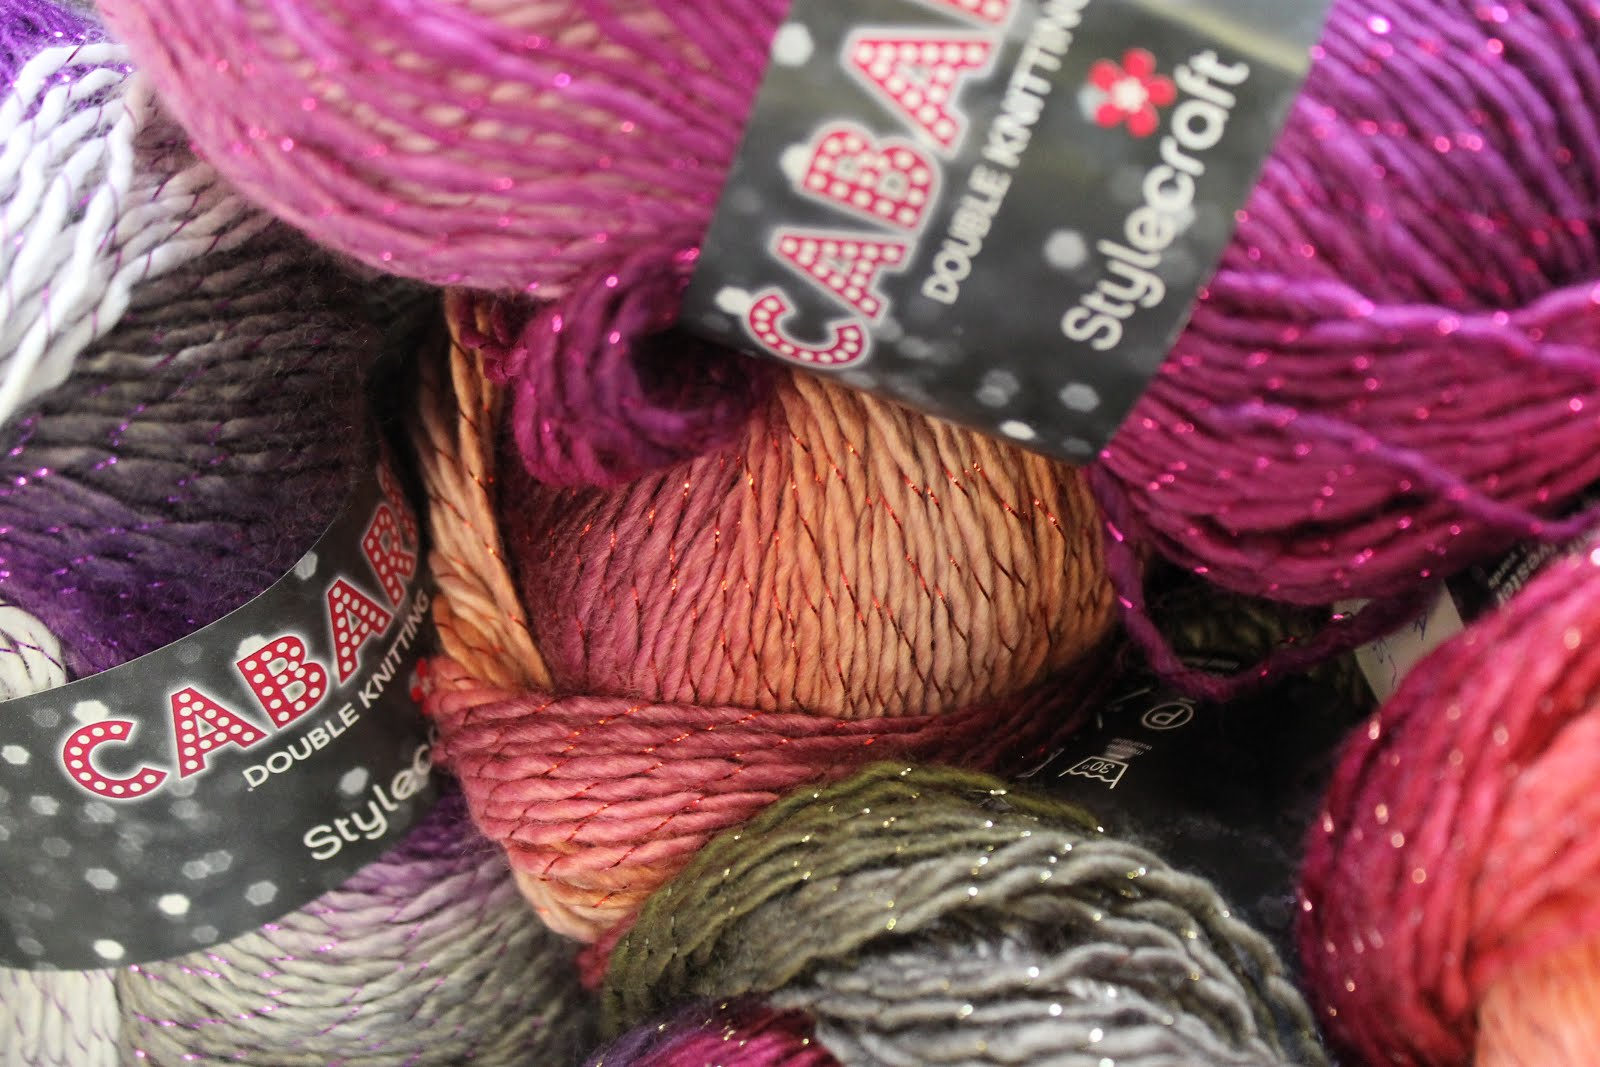 Buy Stylecraft yarns here: